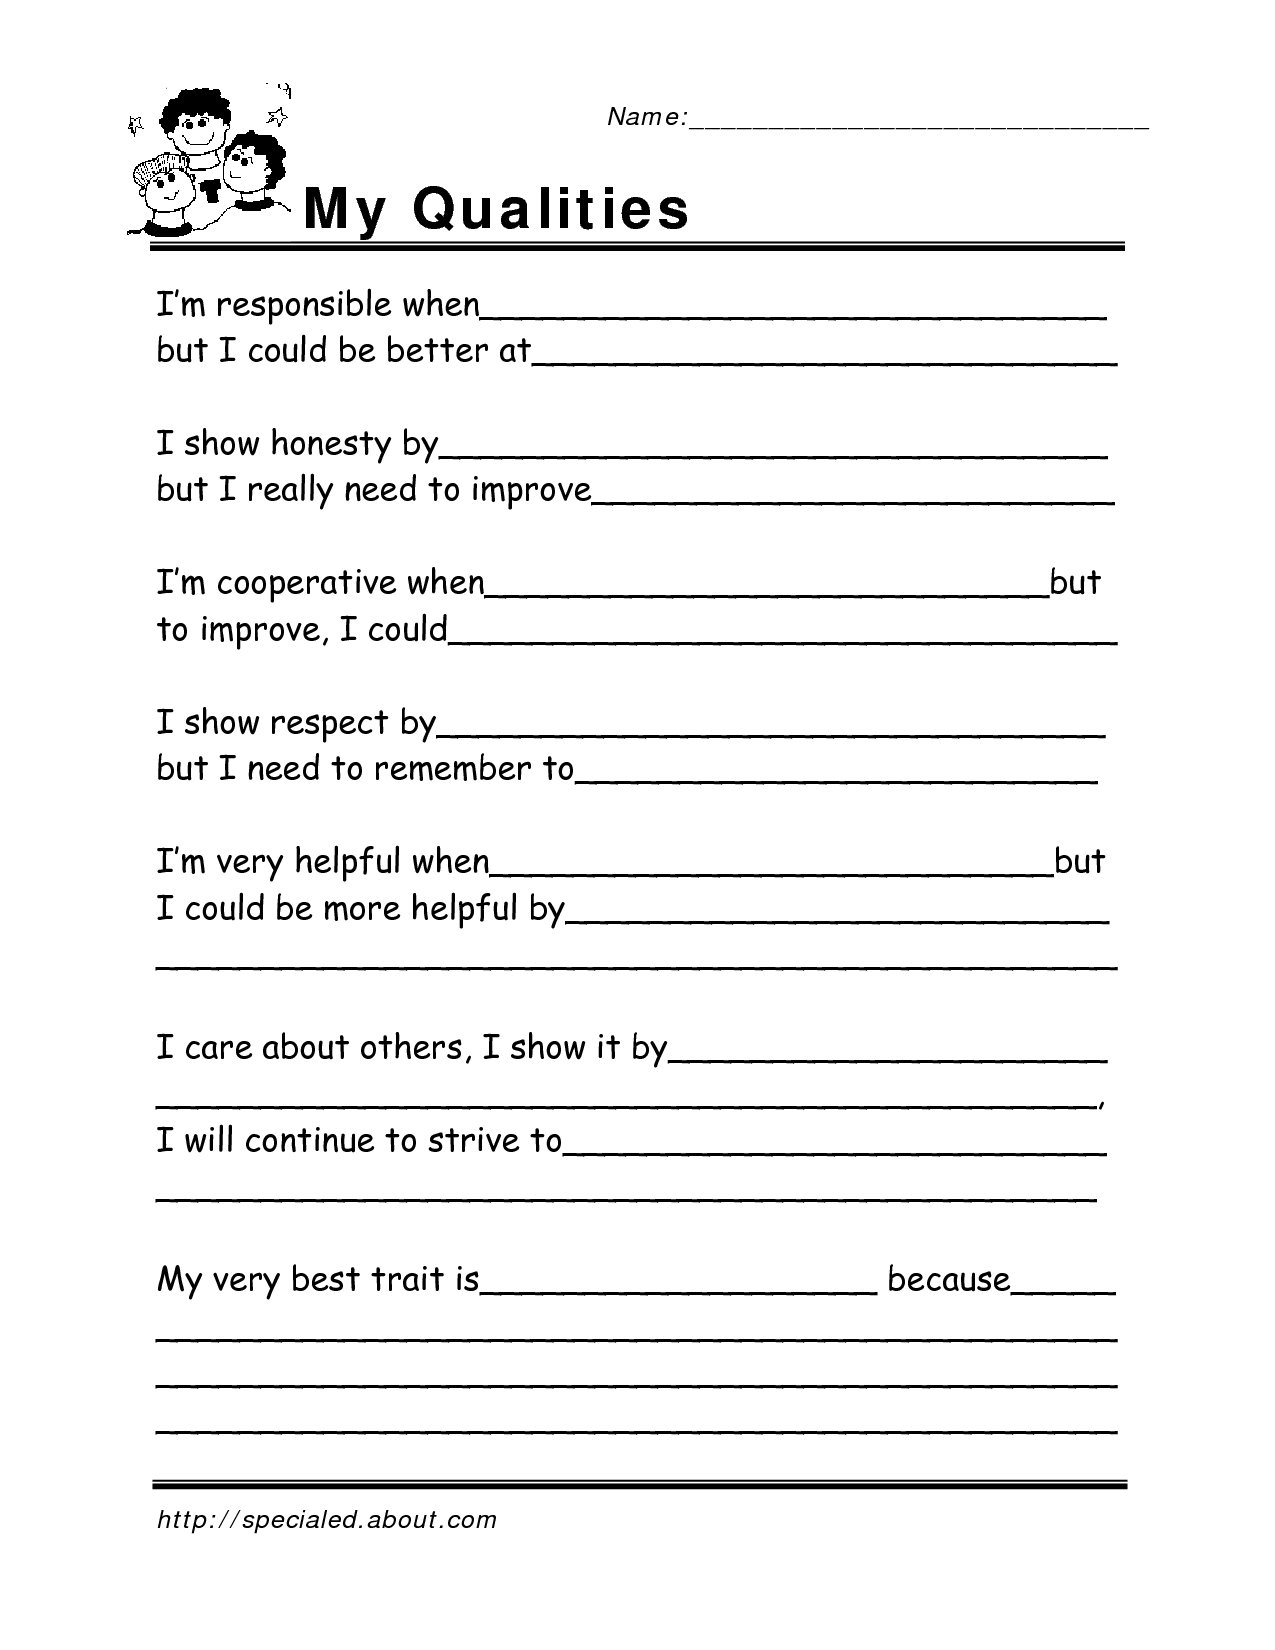 Free Printable Life Skills Worksheets 69 Images In Collection Page 1 Pertaining To Free Life Skills Worksheets